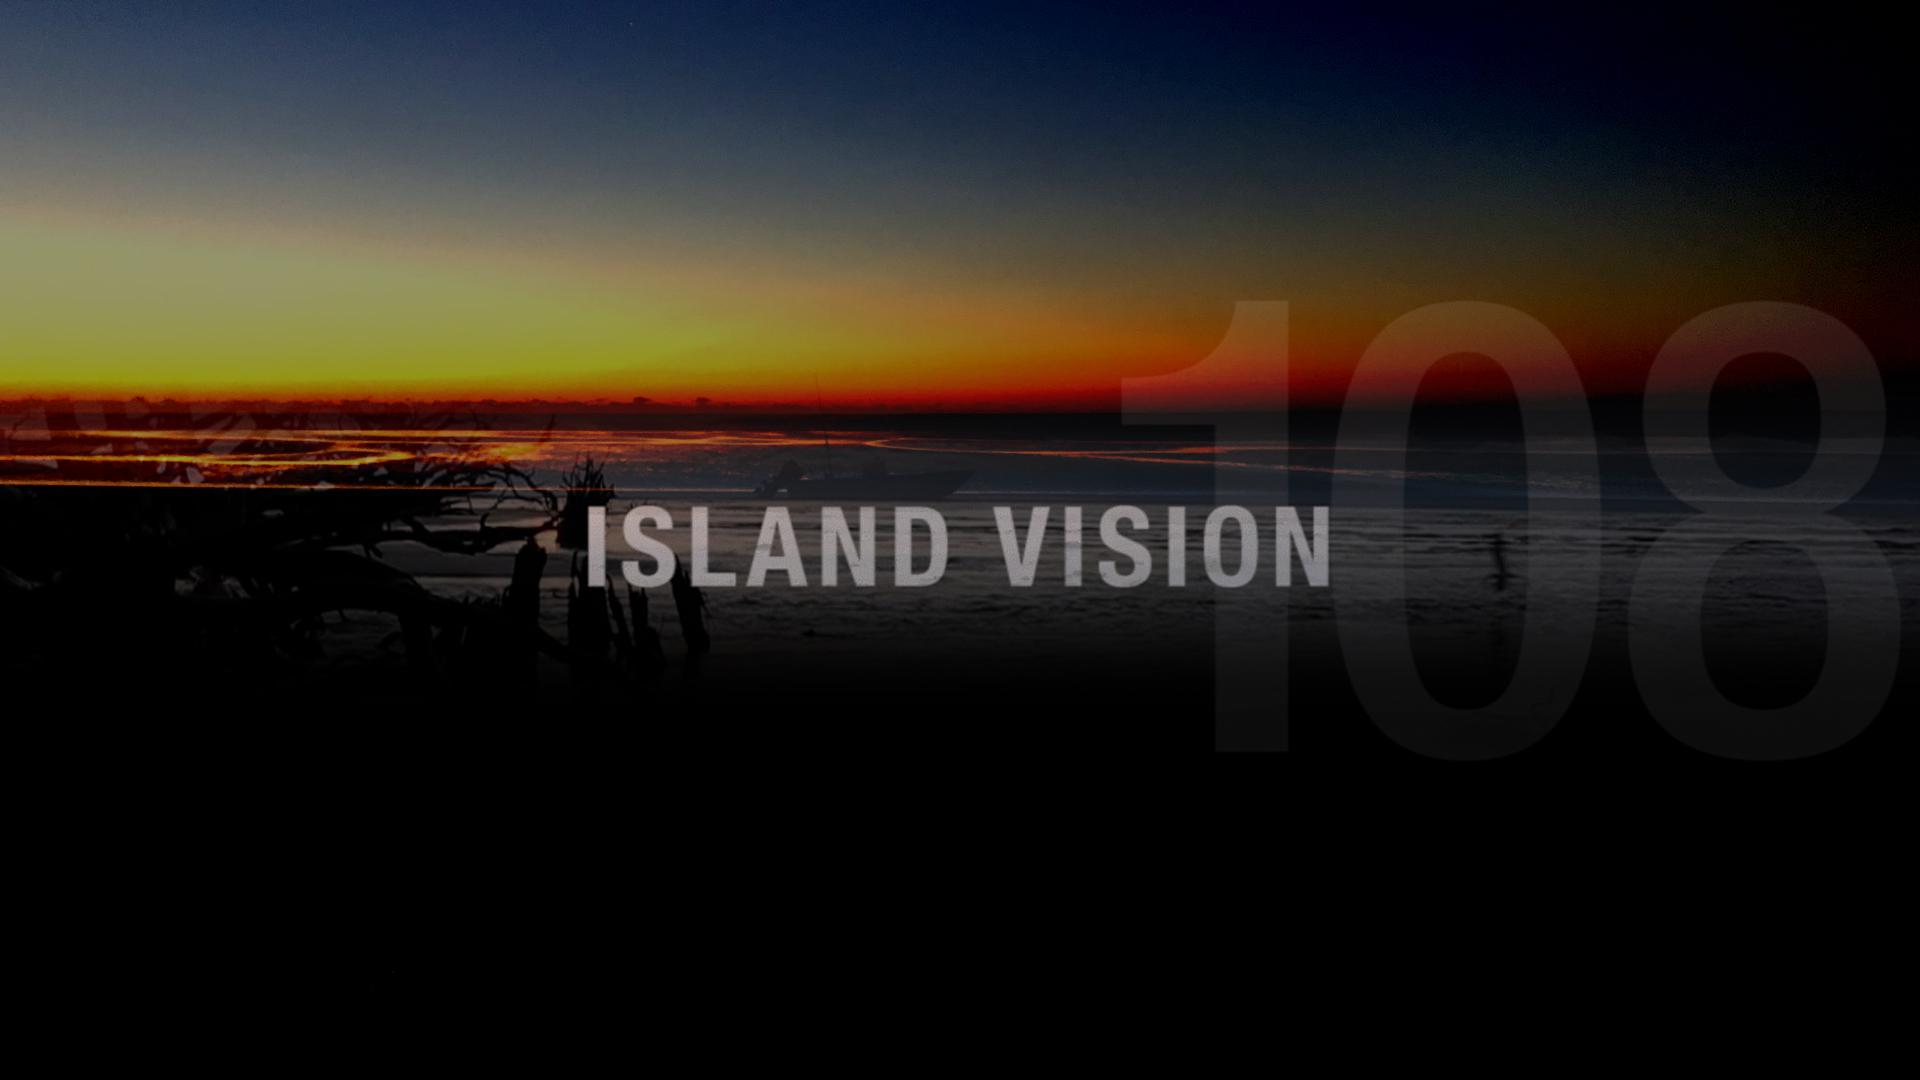 ISLAND VISION      (to play film click circle button to the right. To add to watchlist, click + button below it)